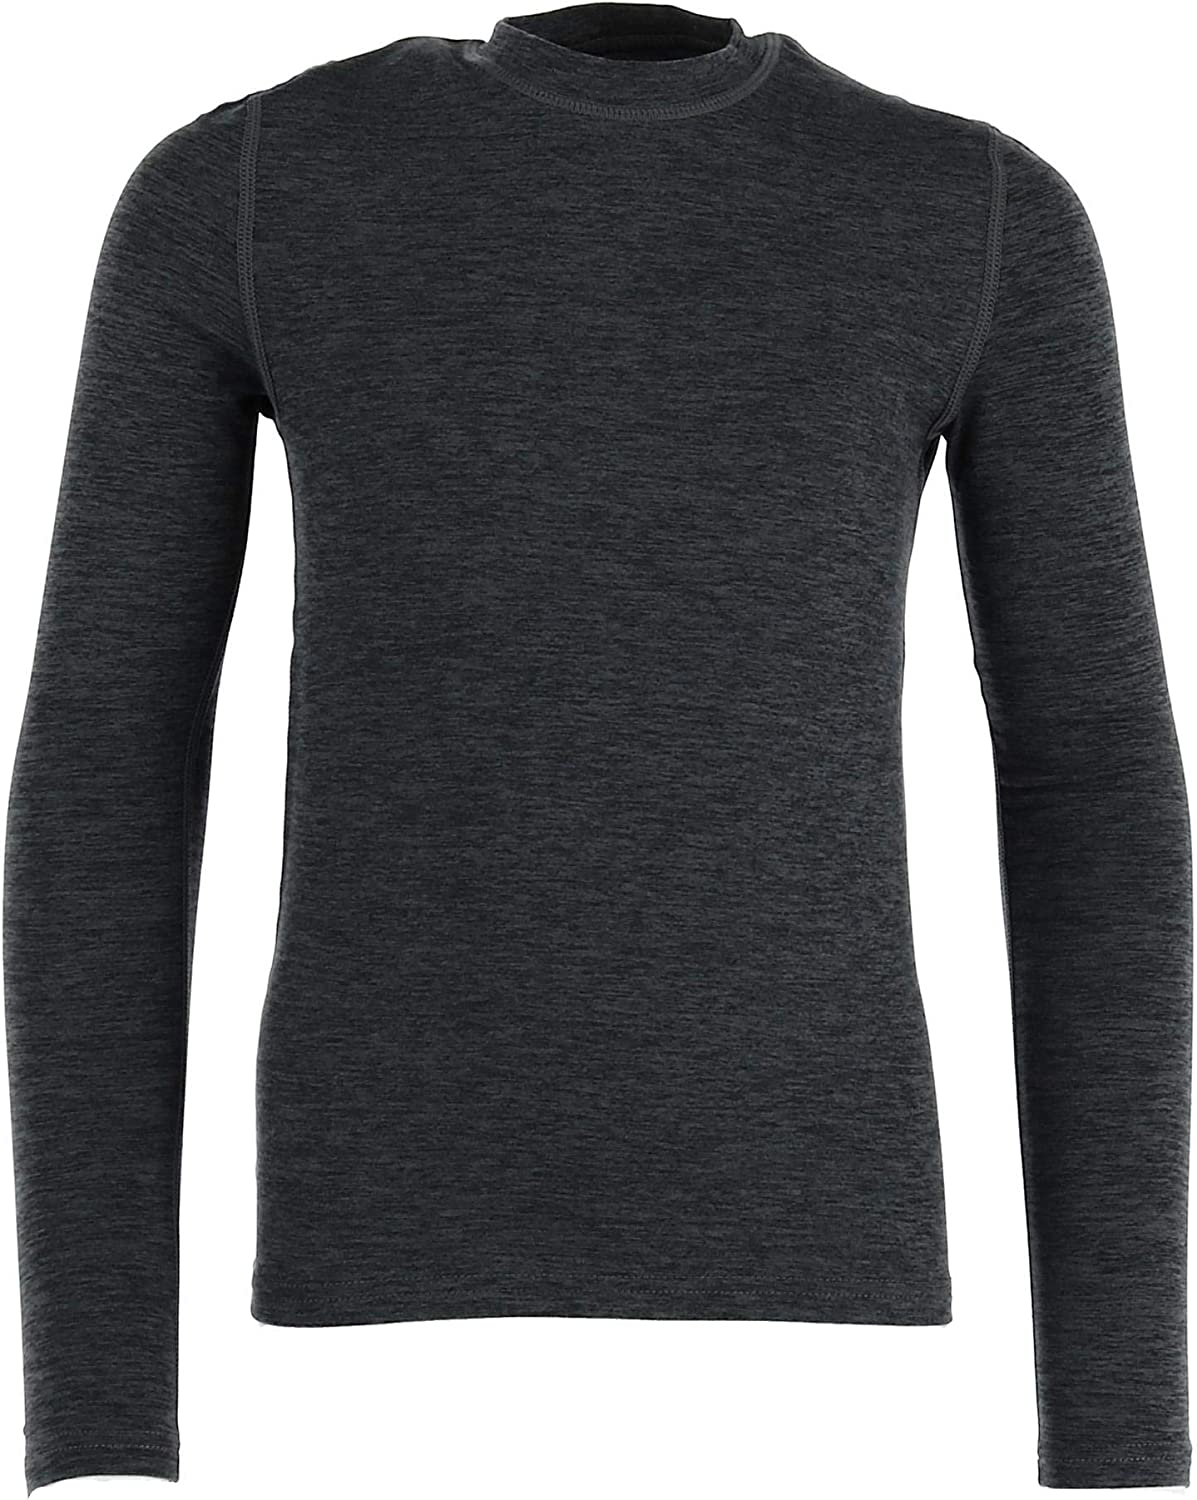 Hanes Boys X Temp Odor Control Thermal Top